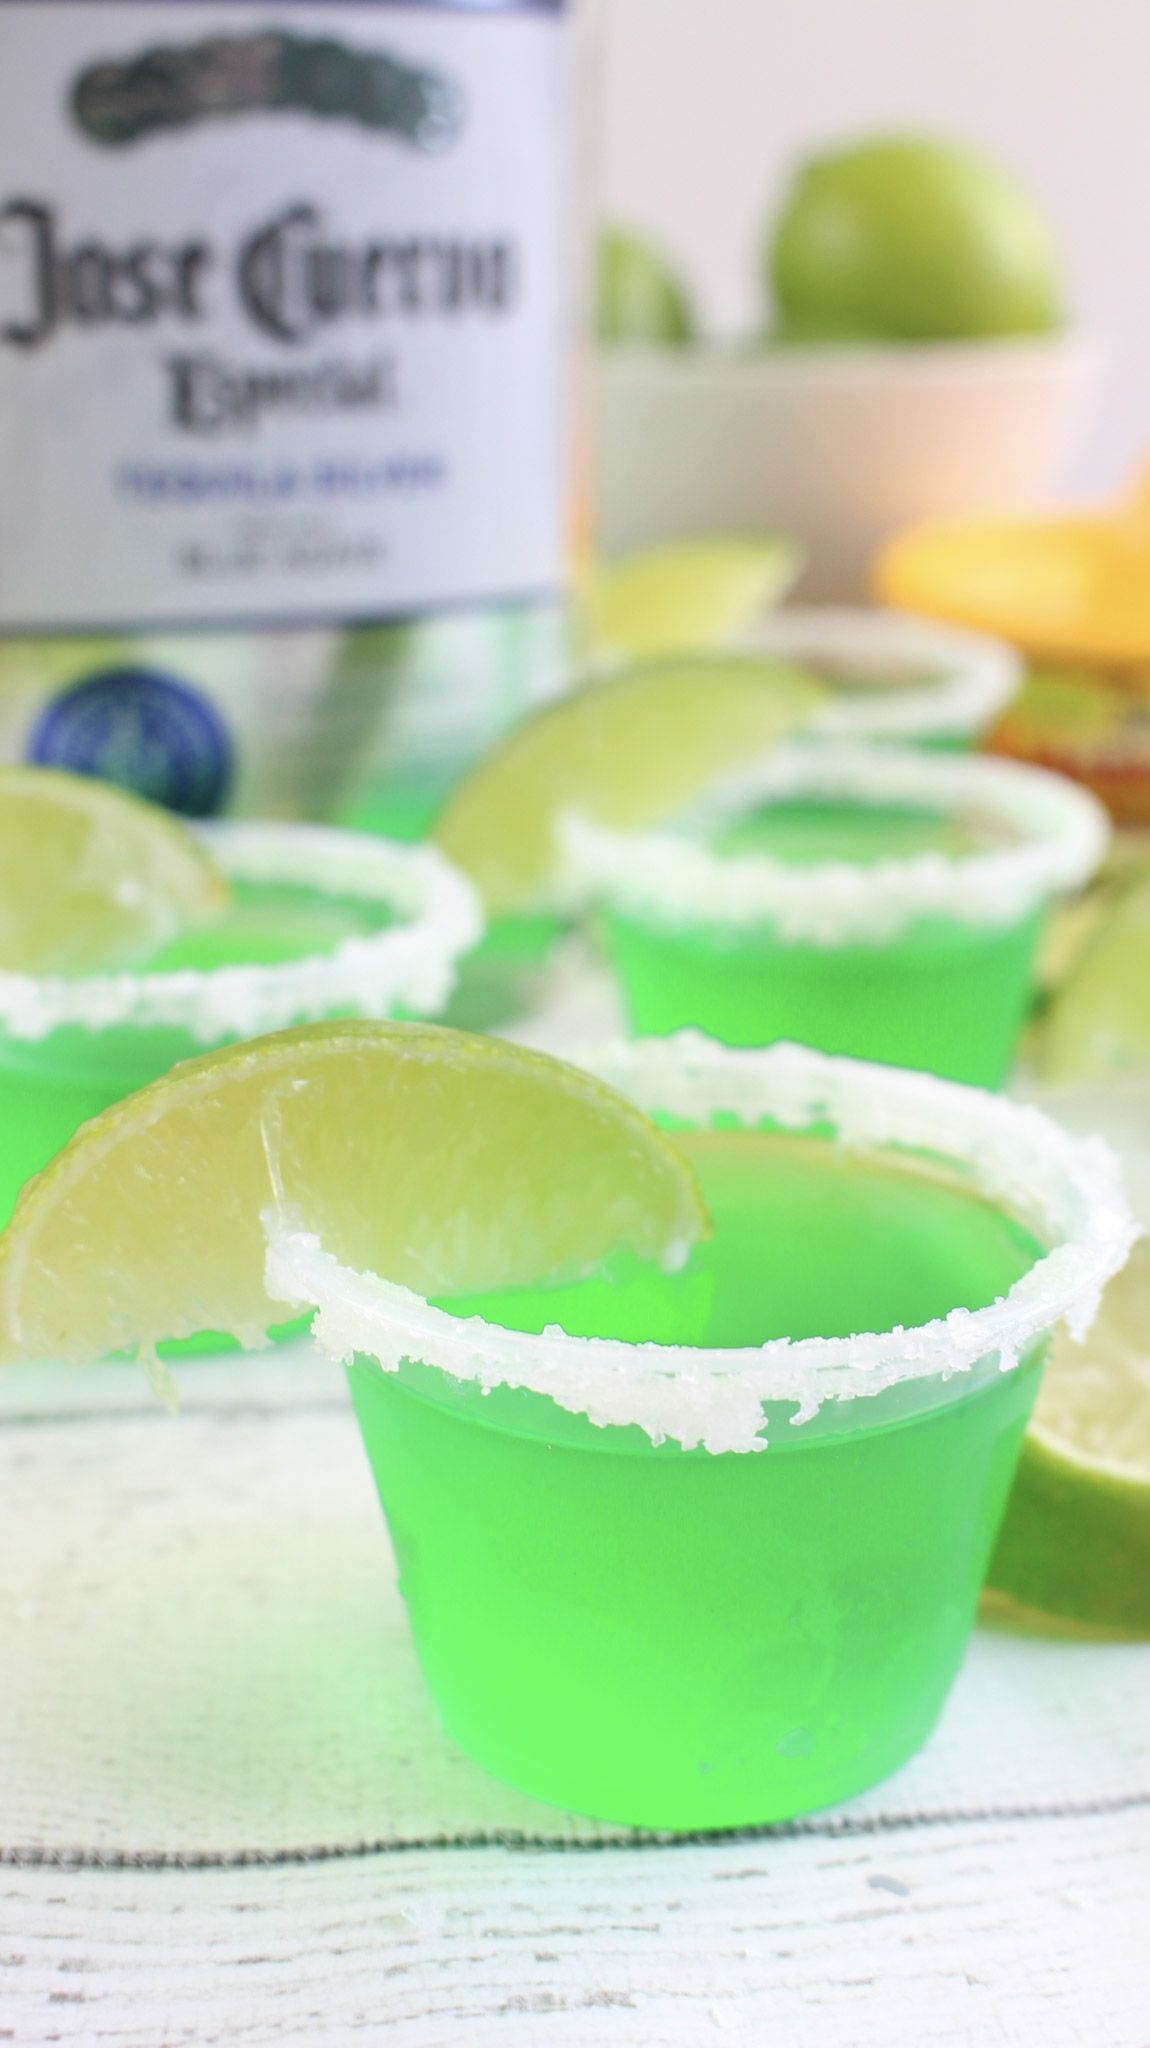 Margarita Jello Shots #halloweenjelloshots Margarita Jello Shots! #jelloshotrecipes Margarita Jello Shots #halloweenjelloshots Margarita Jello Shots! #halloweenjelloshots